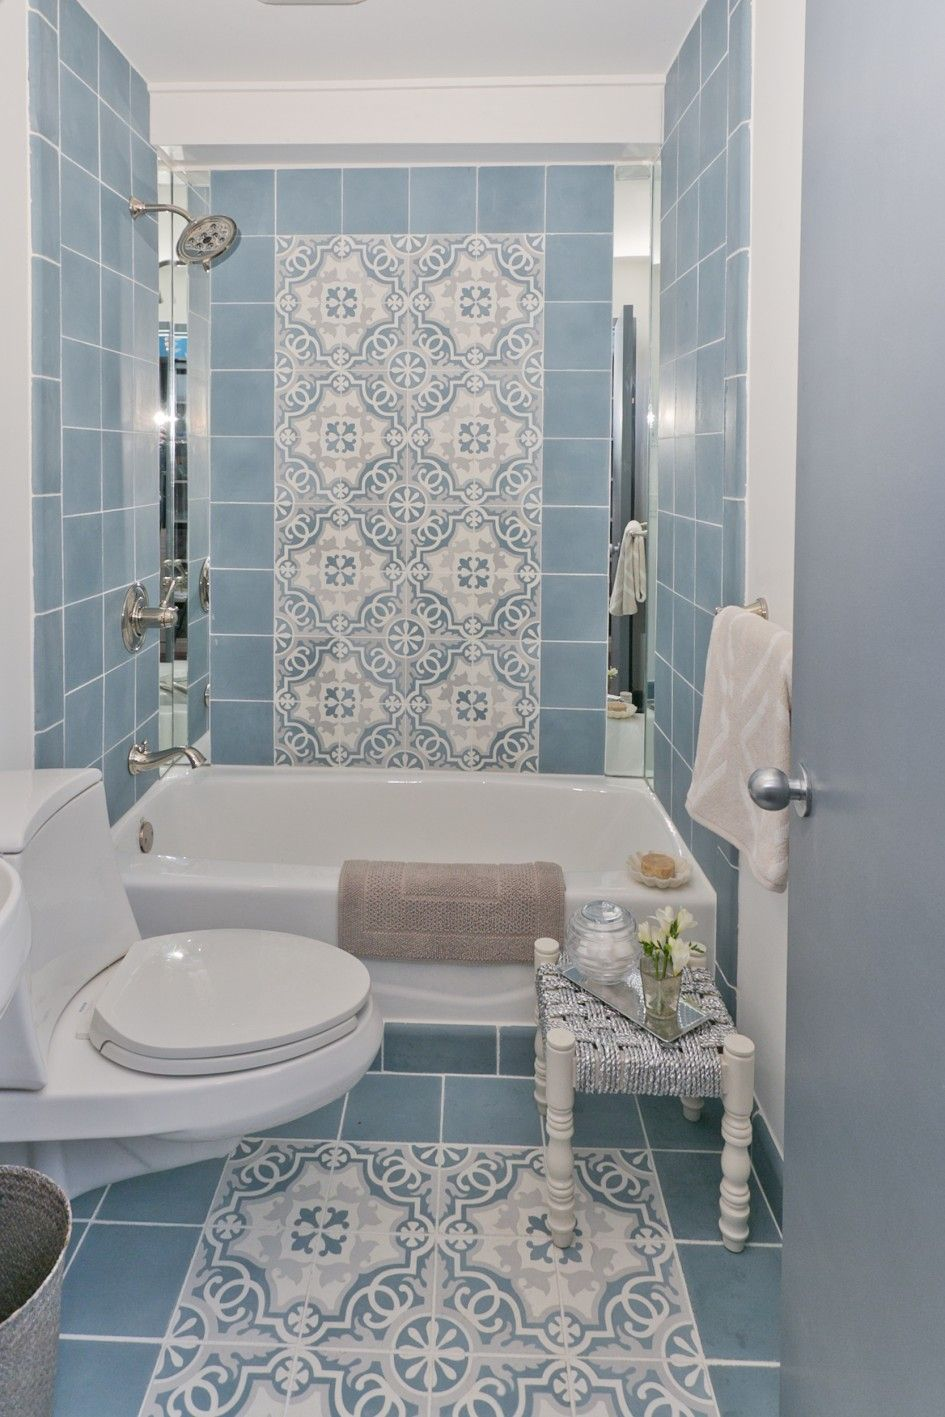 Photo Album For Website  Vintage Blue Bathroom Tiles Ideas And Pictures Vintage Bathroom Designs Vintage Bathroom Designs